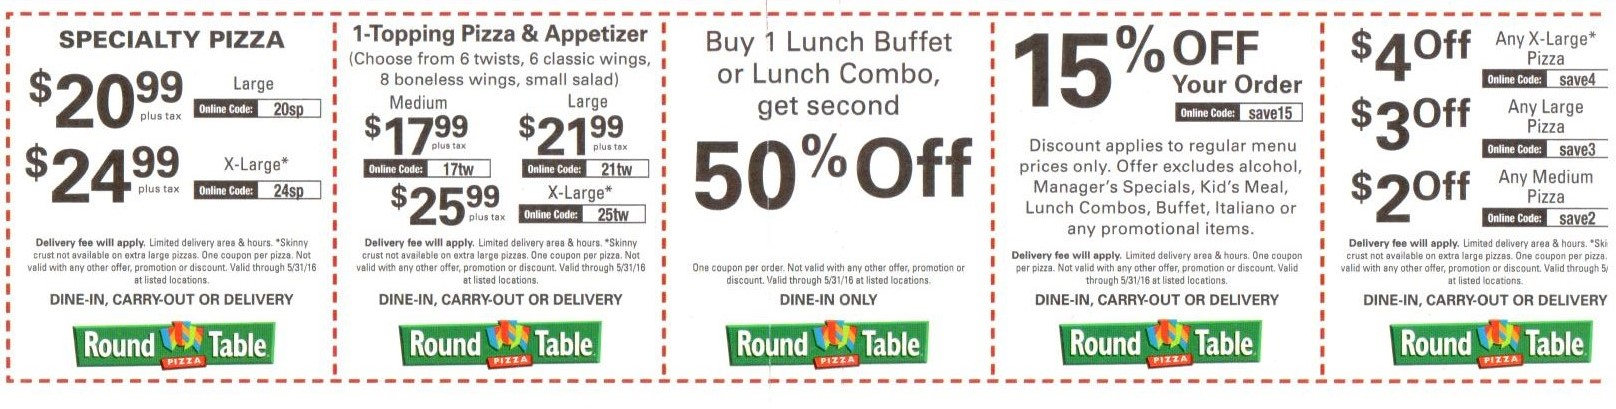 Round table online coupon code